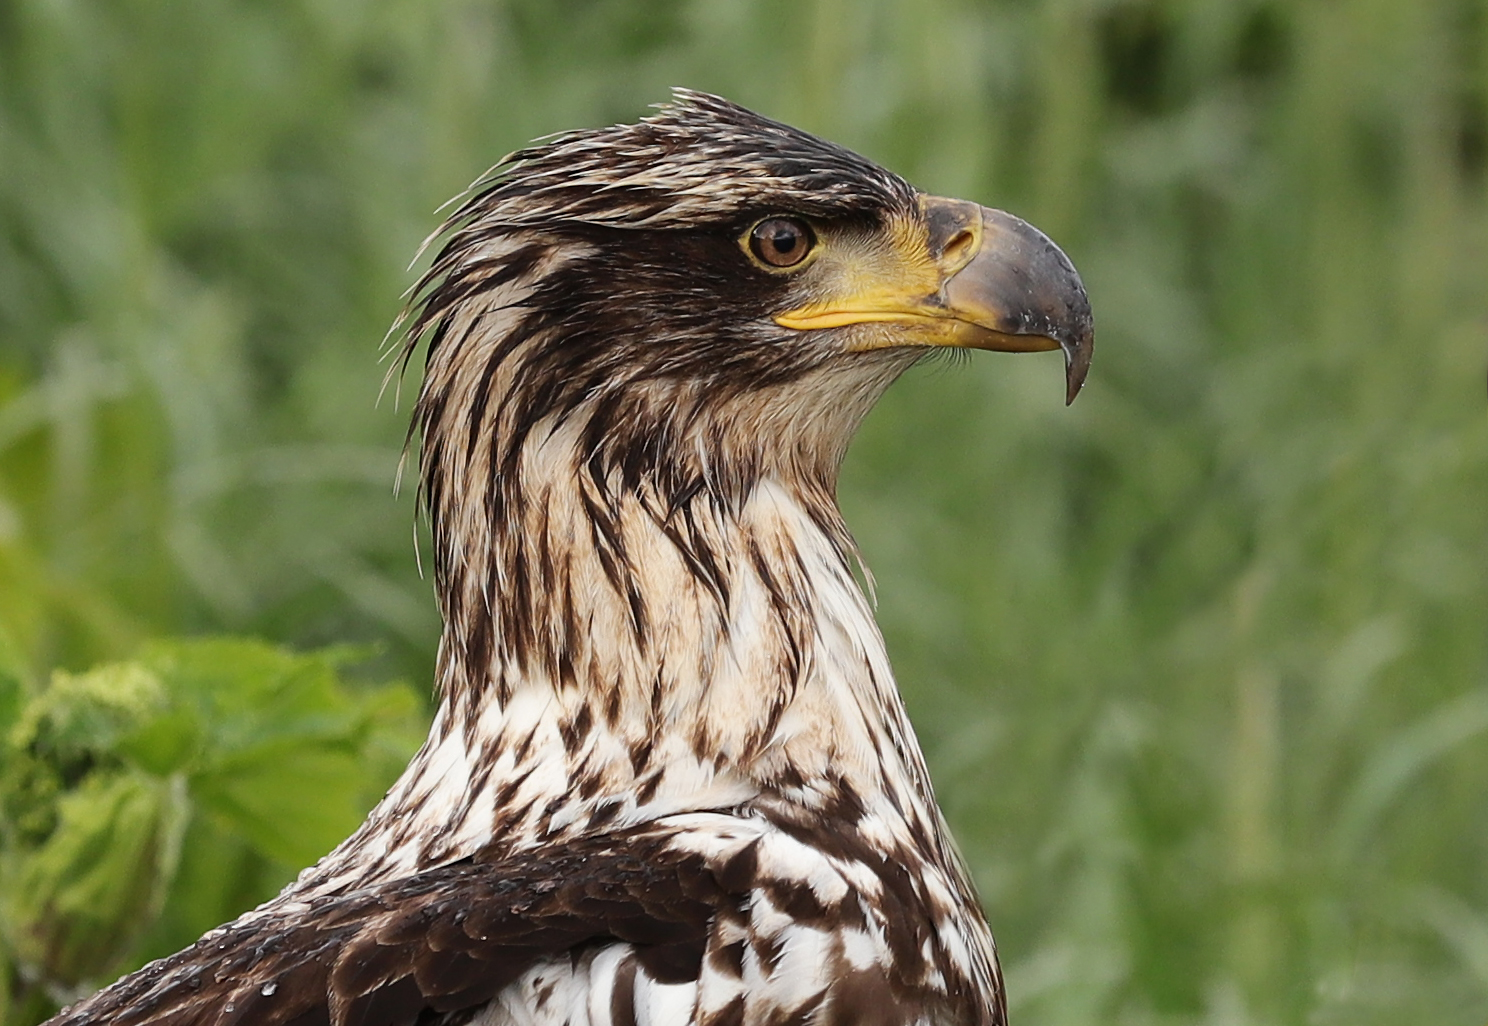 This immature bald eagle is happy that the rain stopped. Doesn't it look happy?